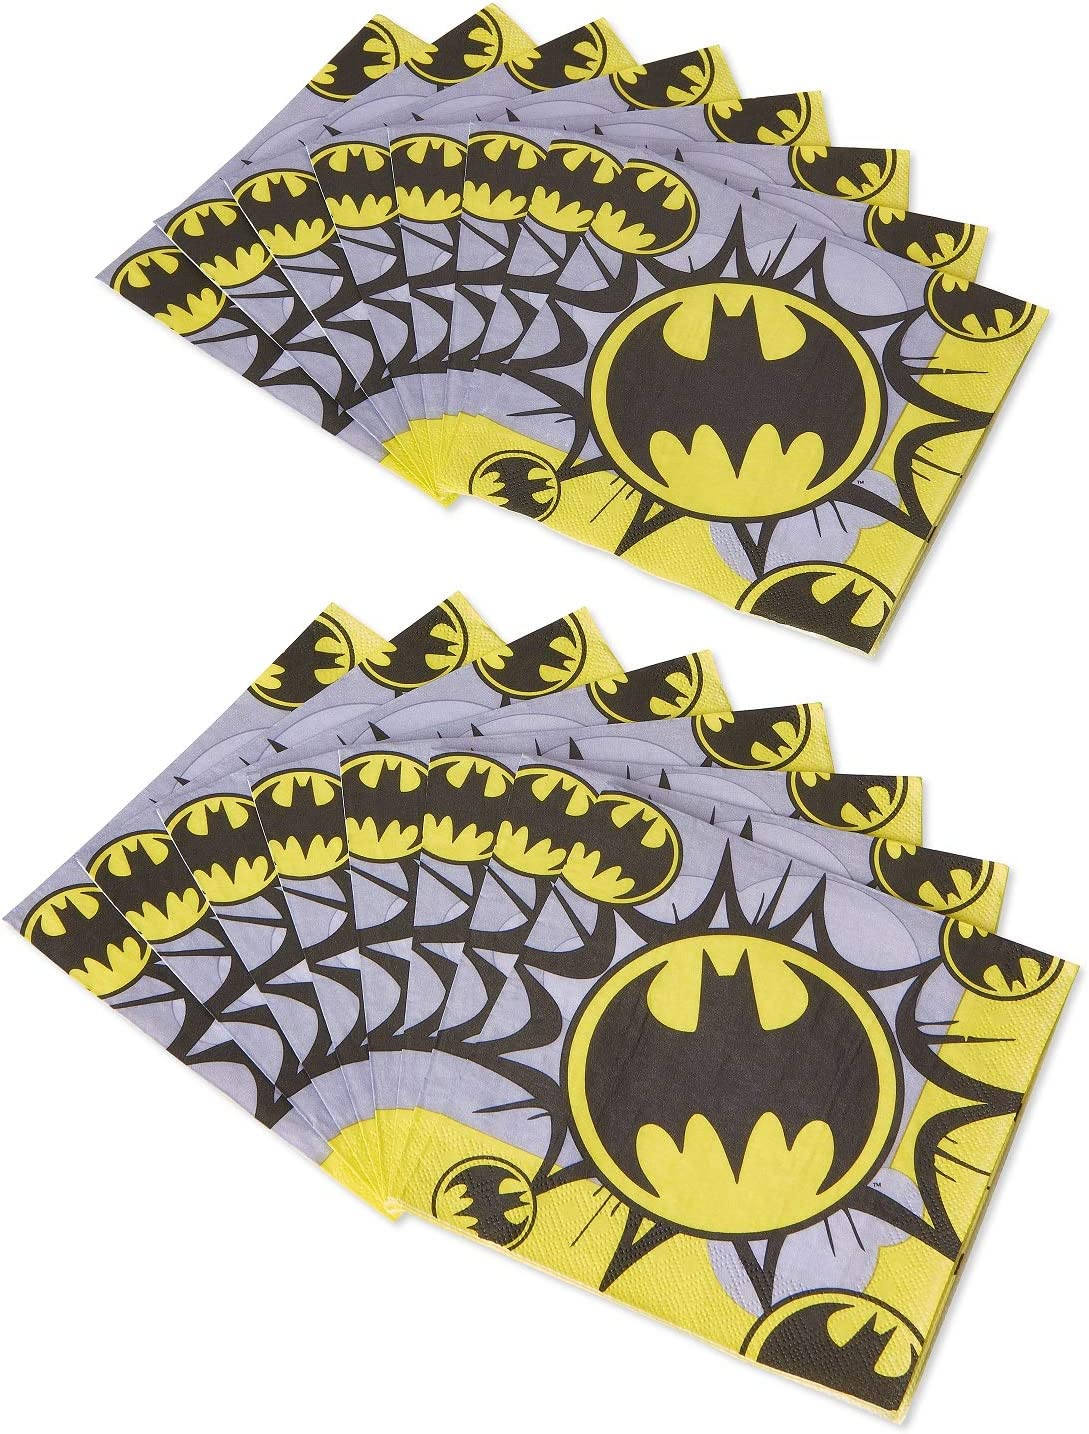 16 Dinner Napkins 16 Dessert Plates and 1 Tablecover Includes 16 Dinner Plates Batman Party Supplies Tableware Bundle Pack for 16 Guests